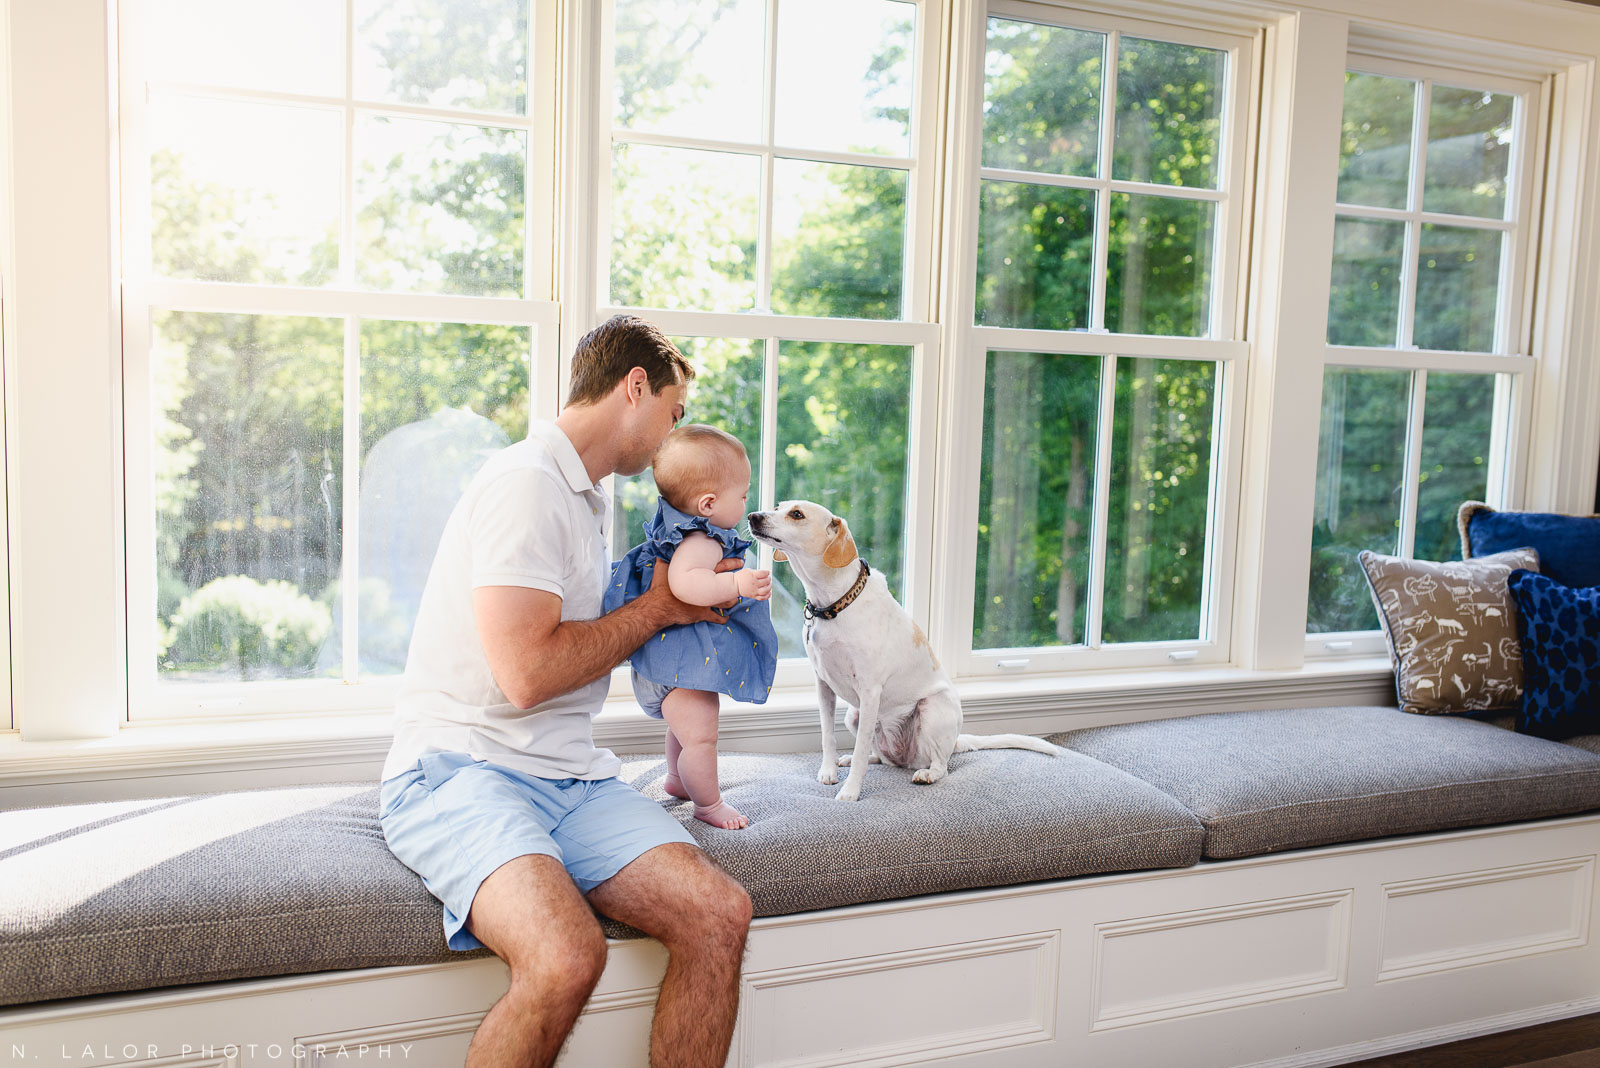 Dad and baby daughter with the dog. In-home family session with N. Lalor Photography in New Canaan, CT.